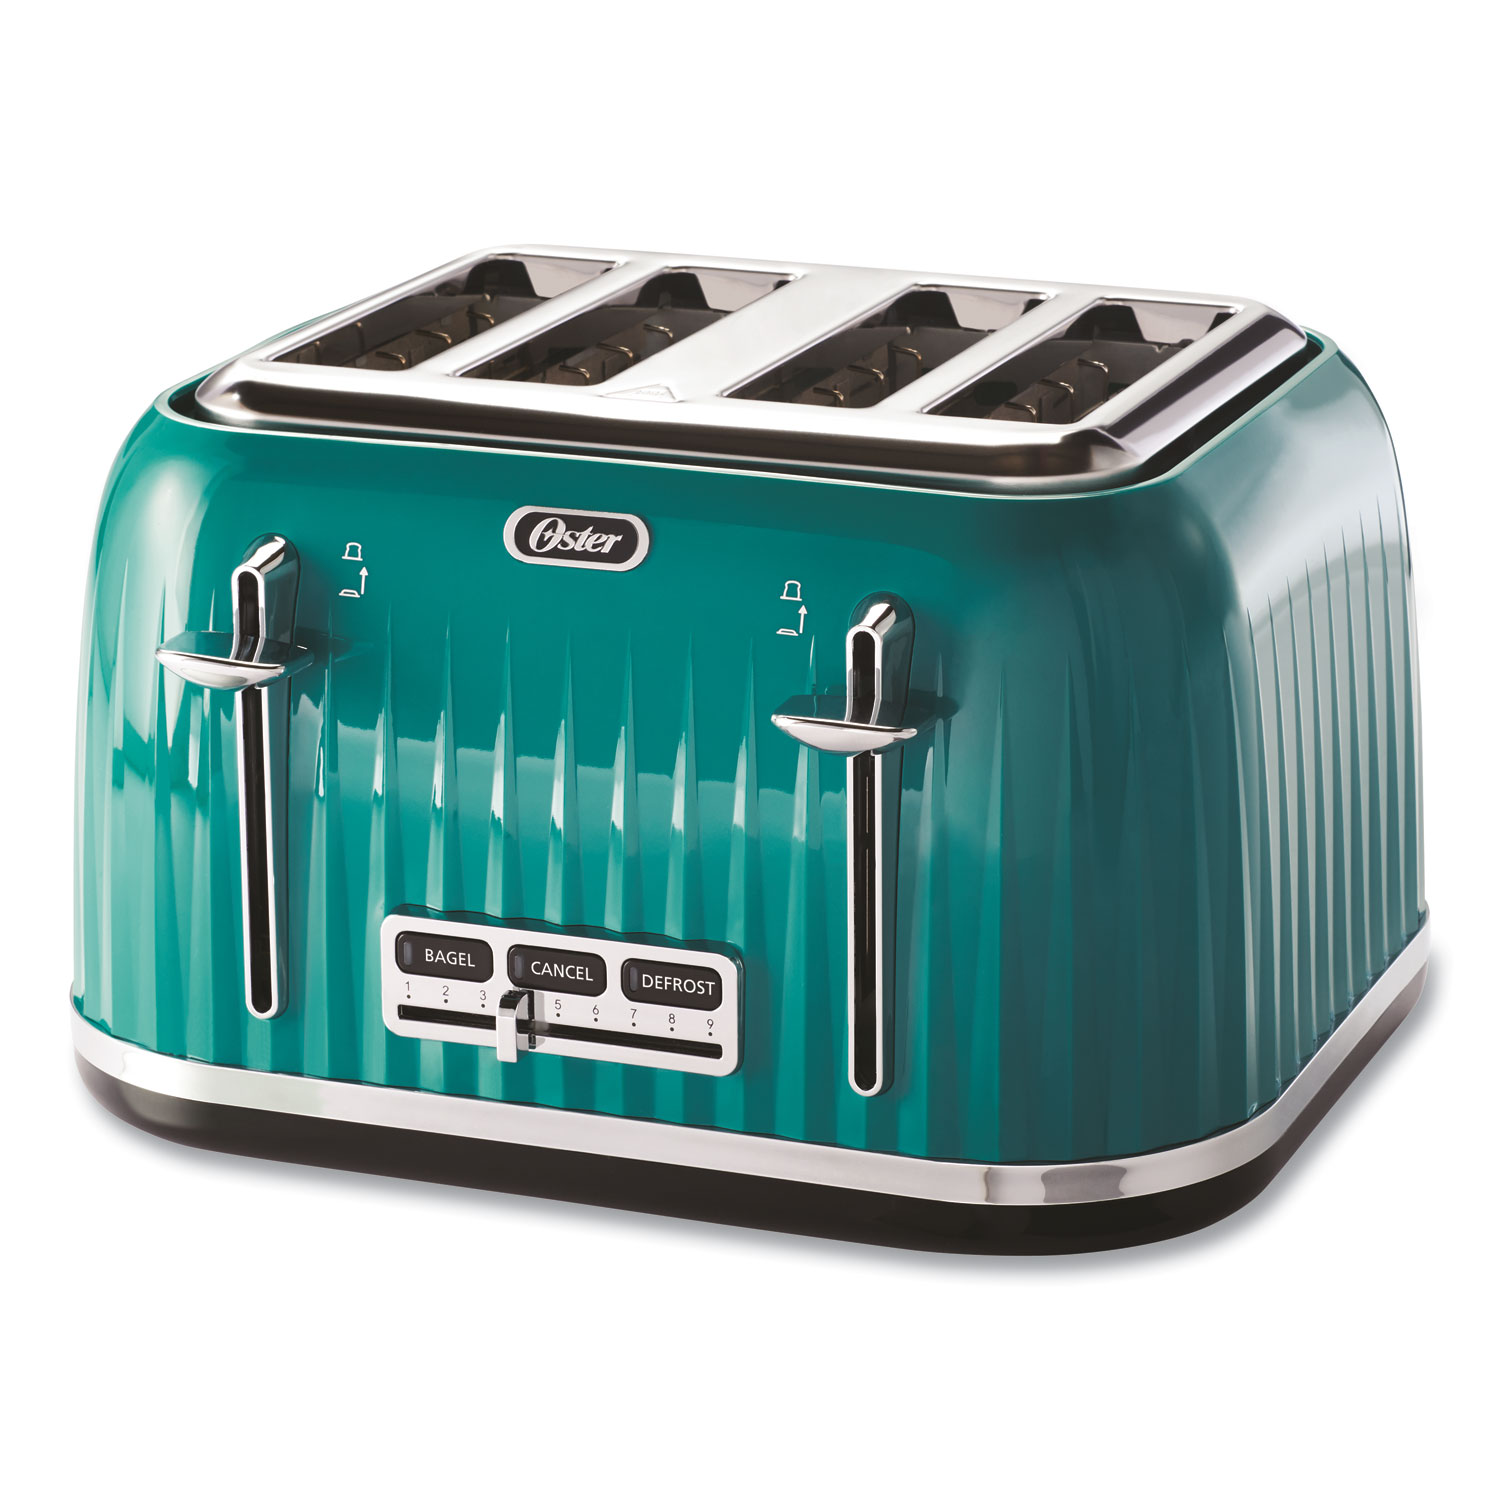 Oster® 4-Slice Toaster with Textured Design with Chrome Accents, 12 x 13 x 8, Teal